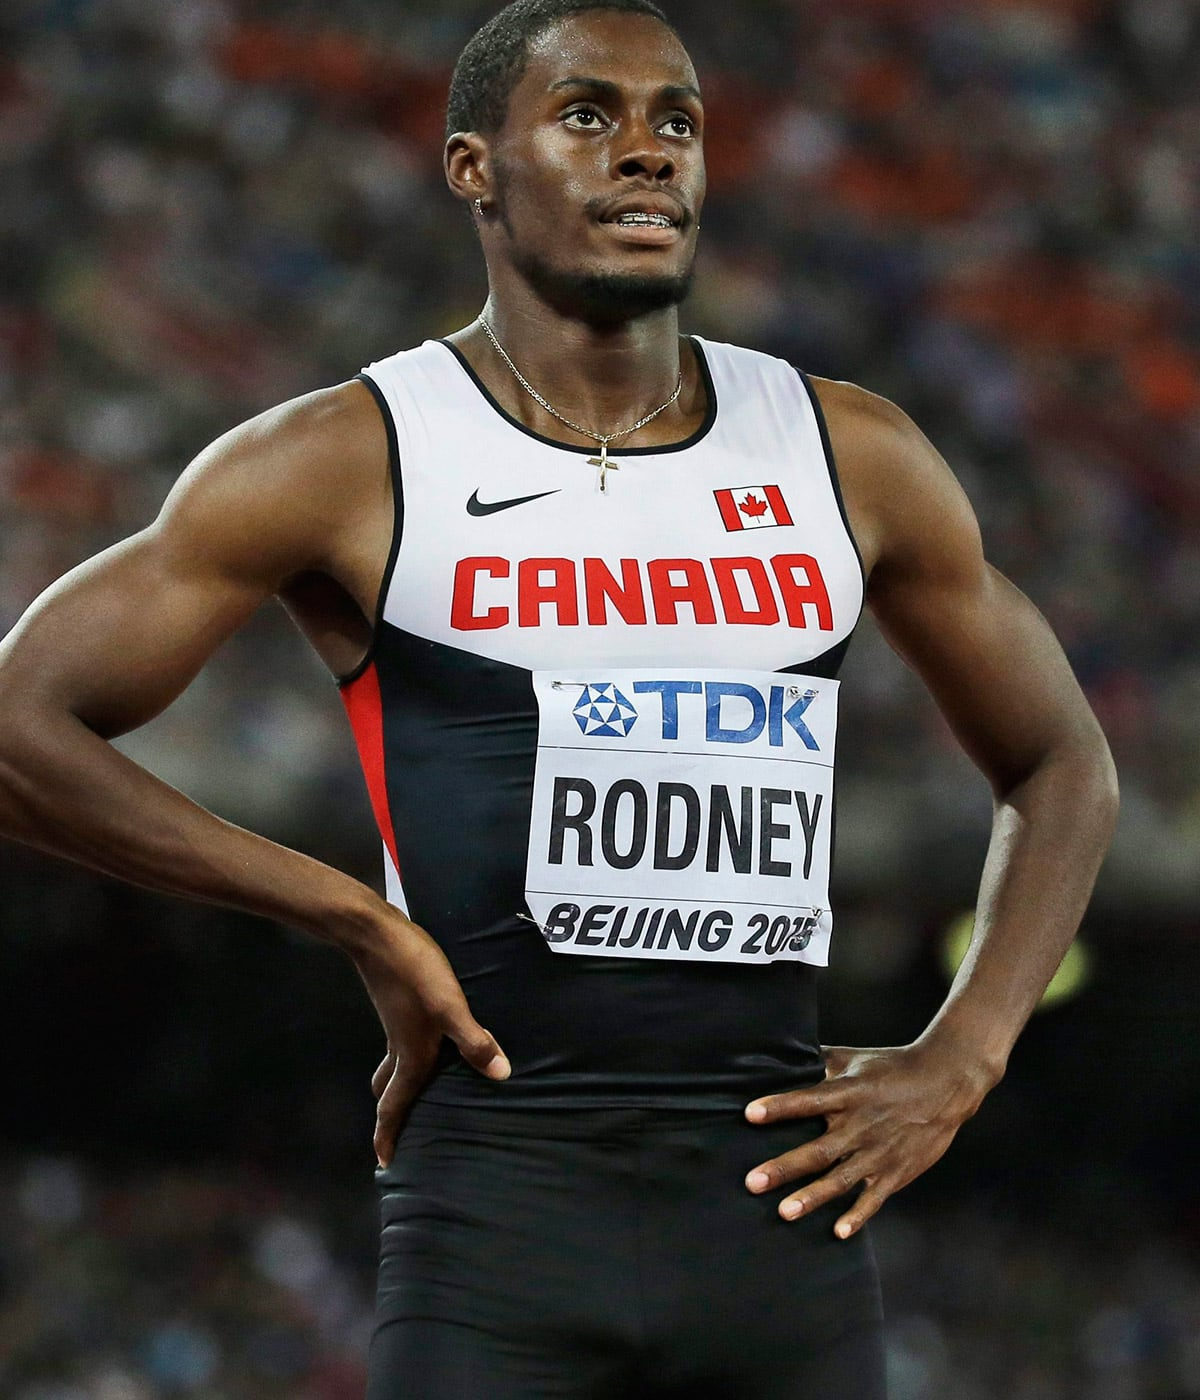 Sprinter Brendon Rodney declares love for his superwoman